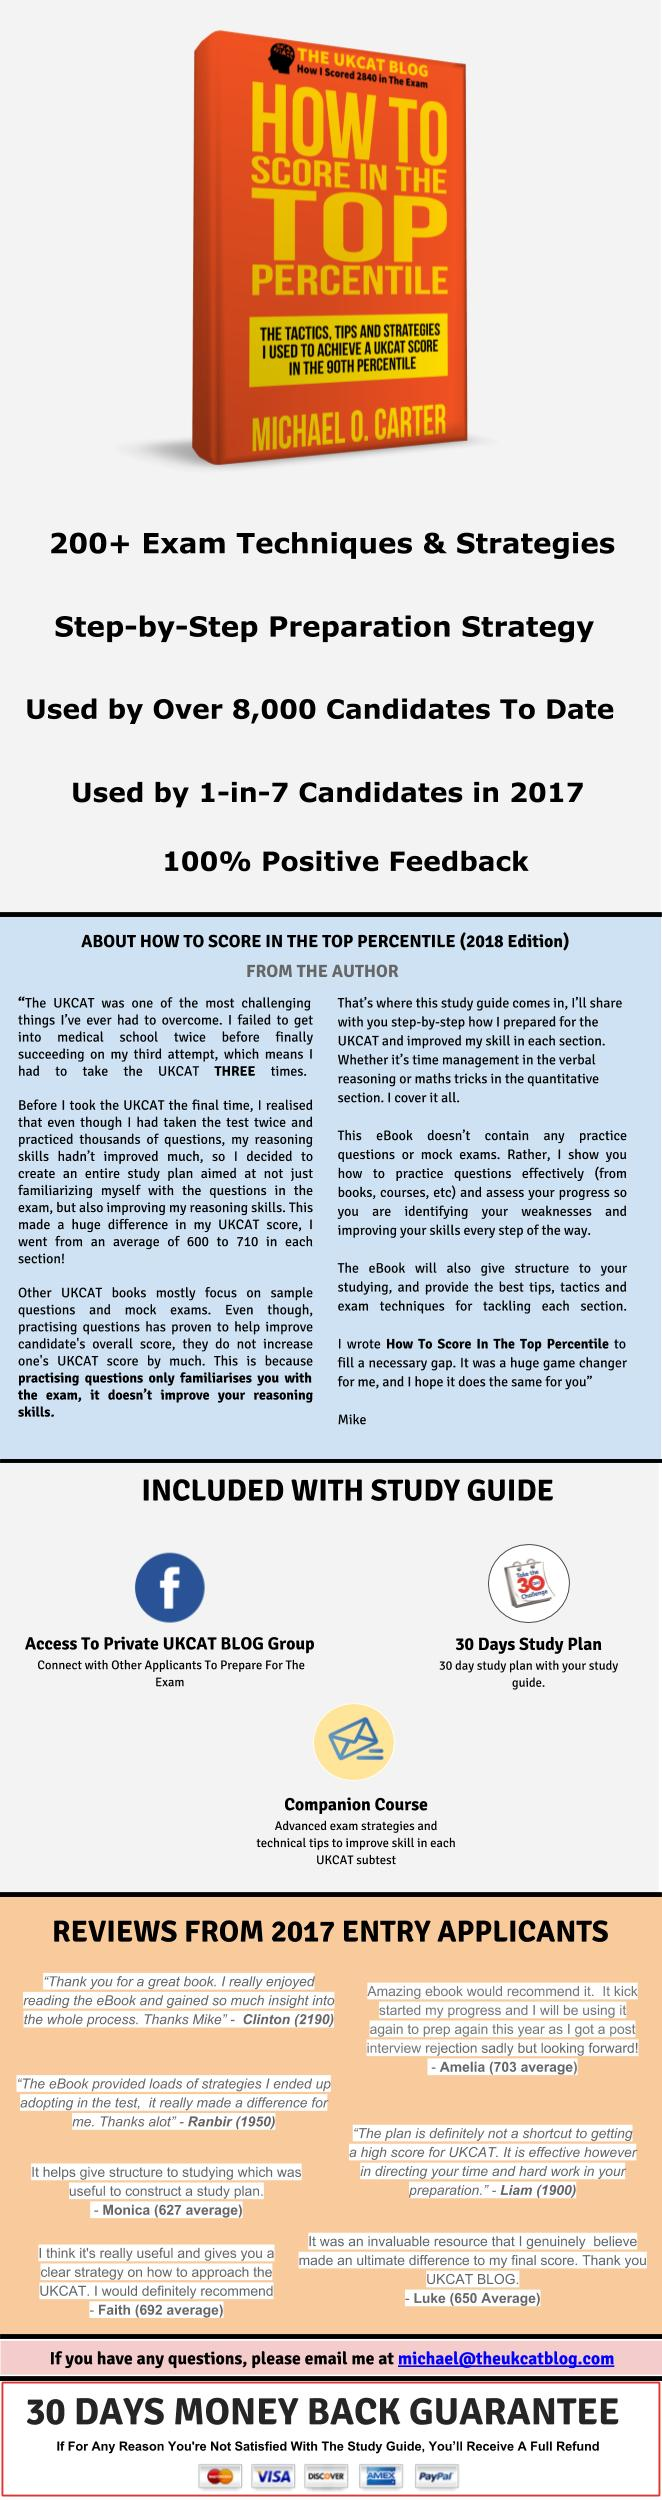 The UKCAT Study Guide: How To Score In The Top Percentile - Payhip